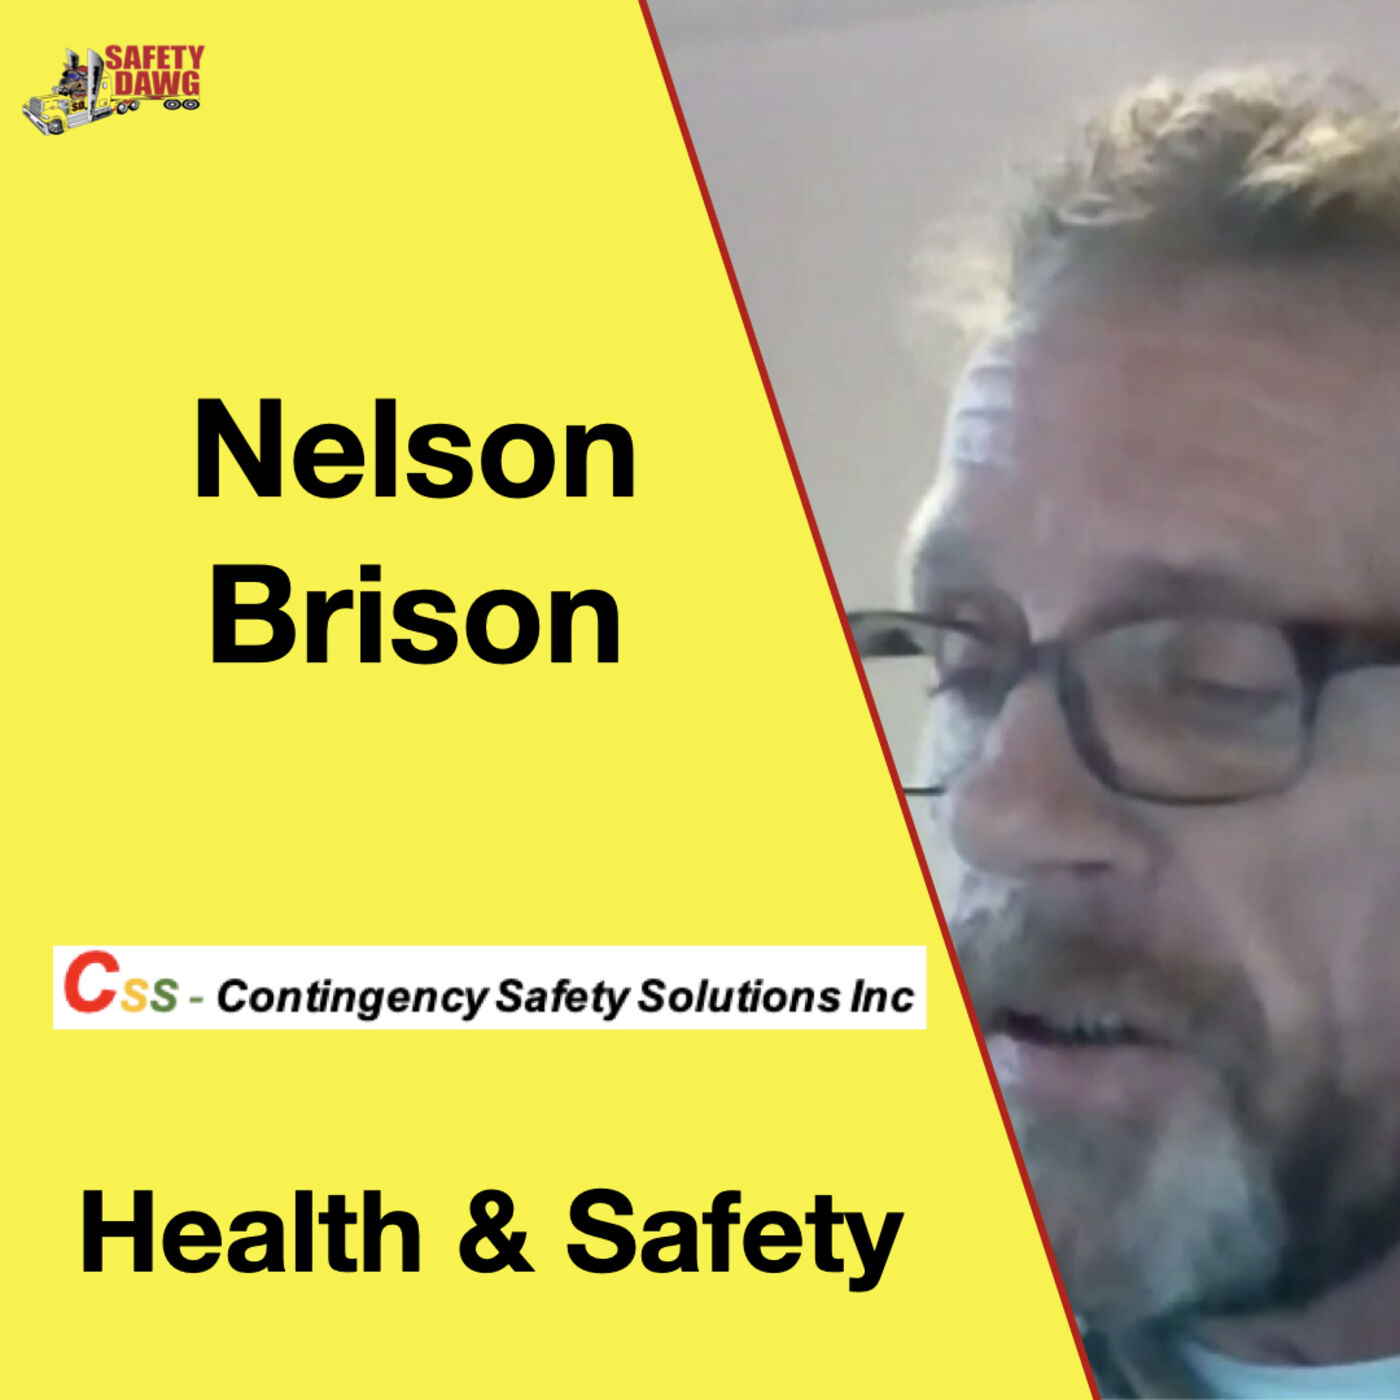 Health and Safety Committee, Nelson Discusses H&S